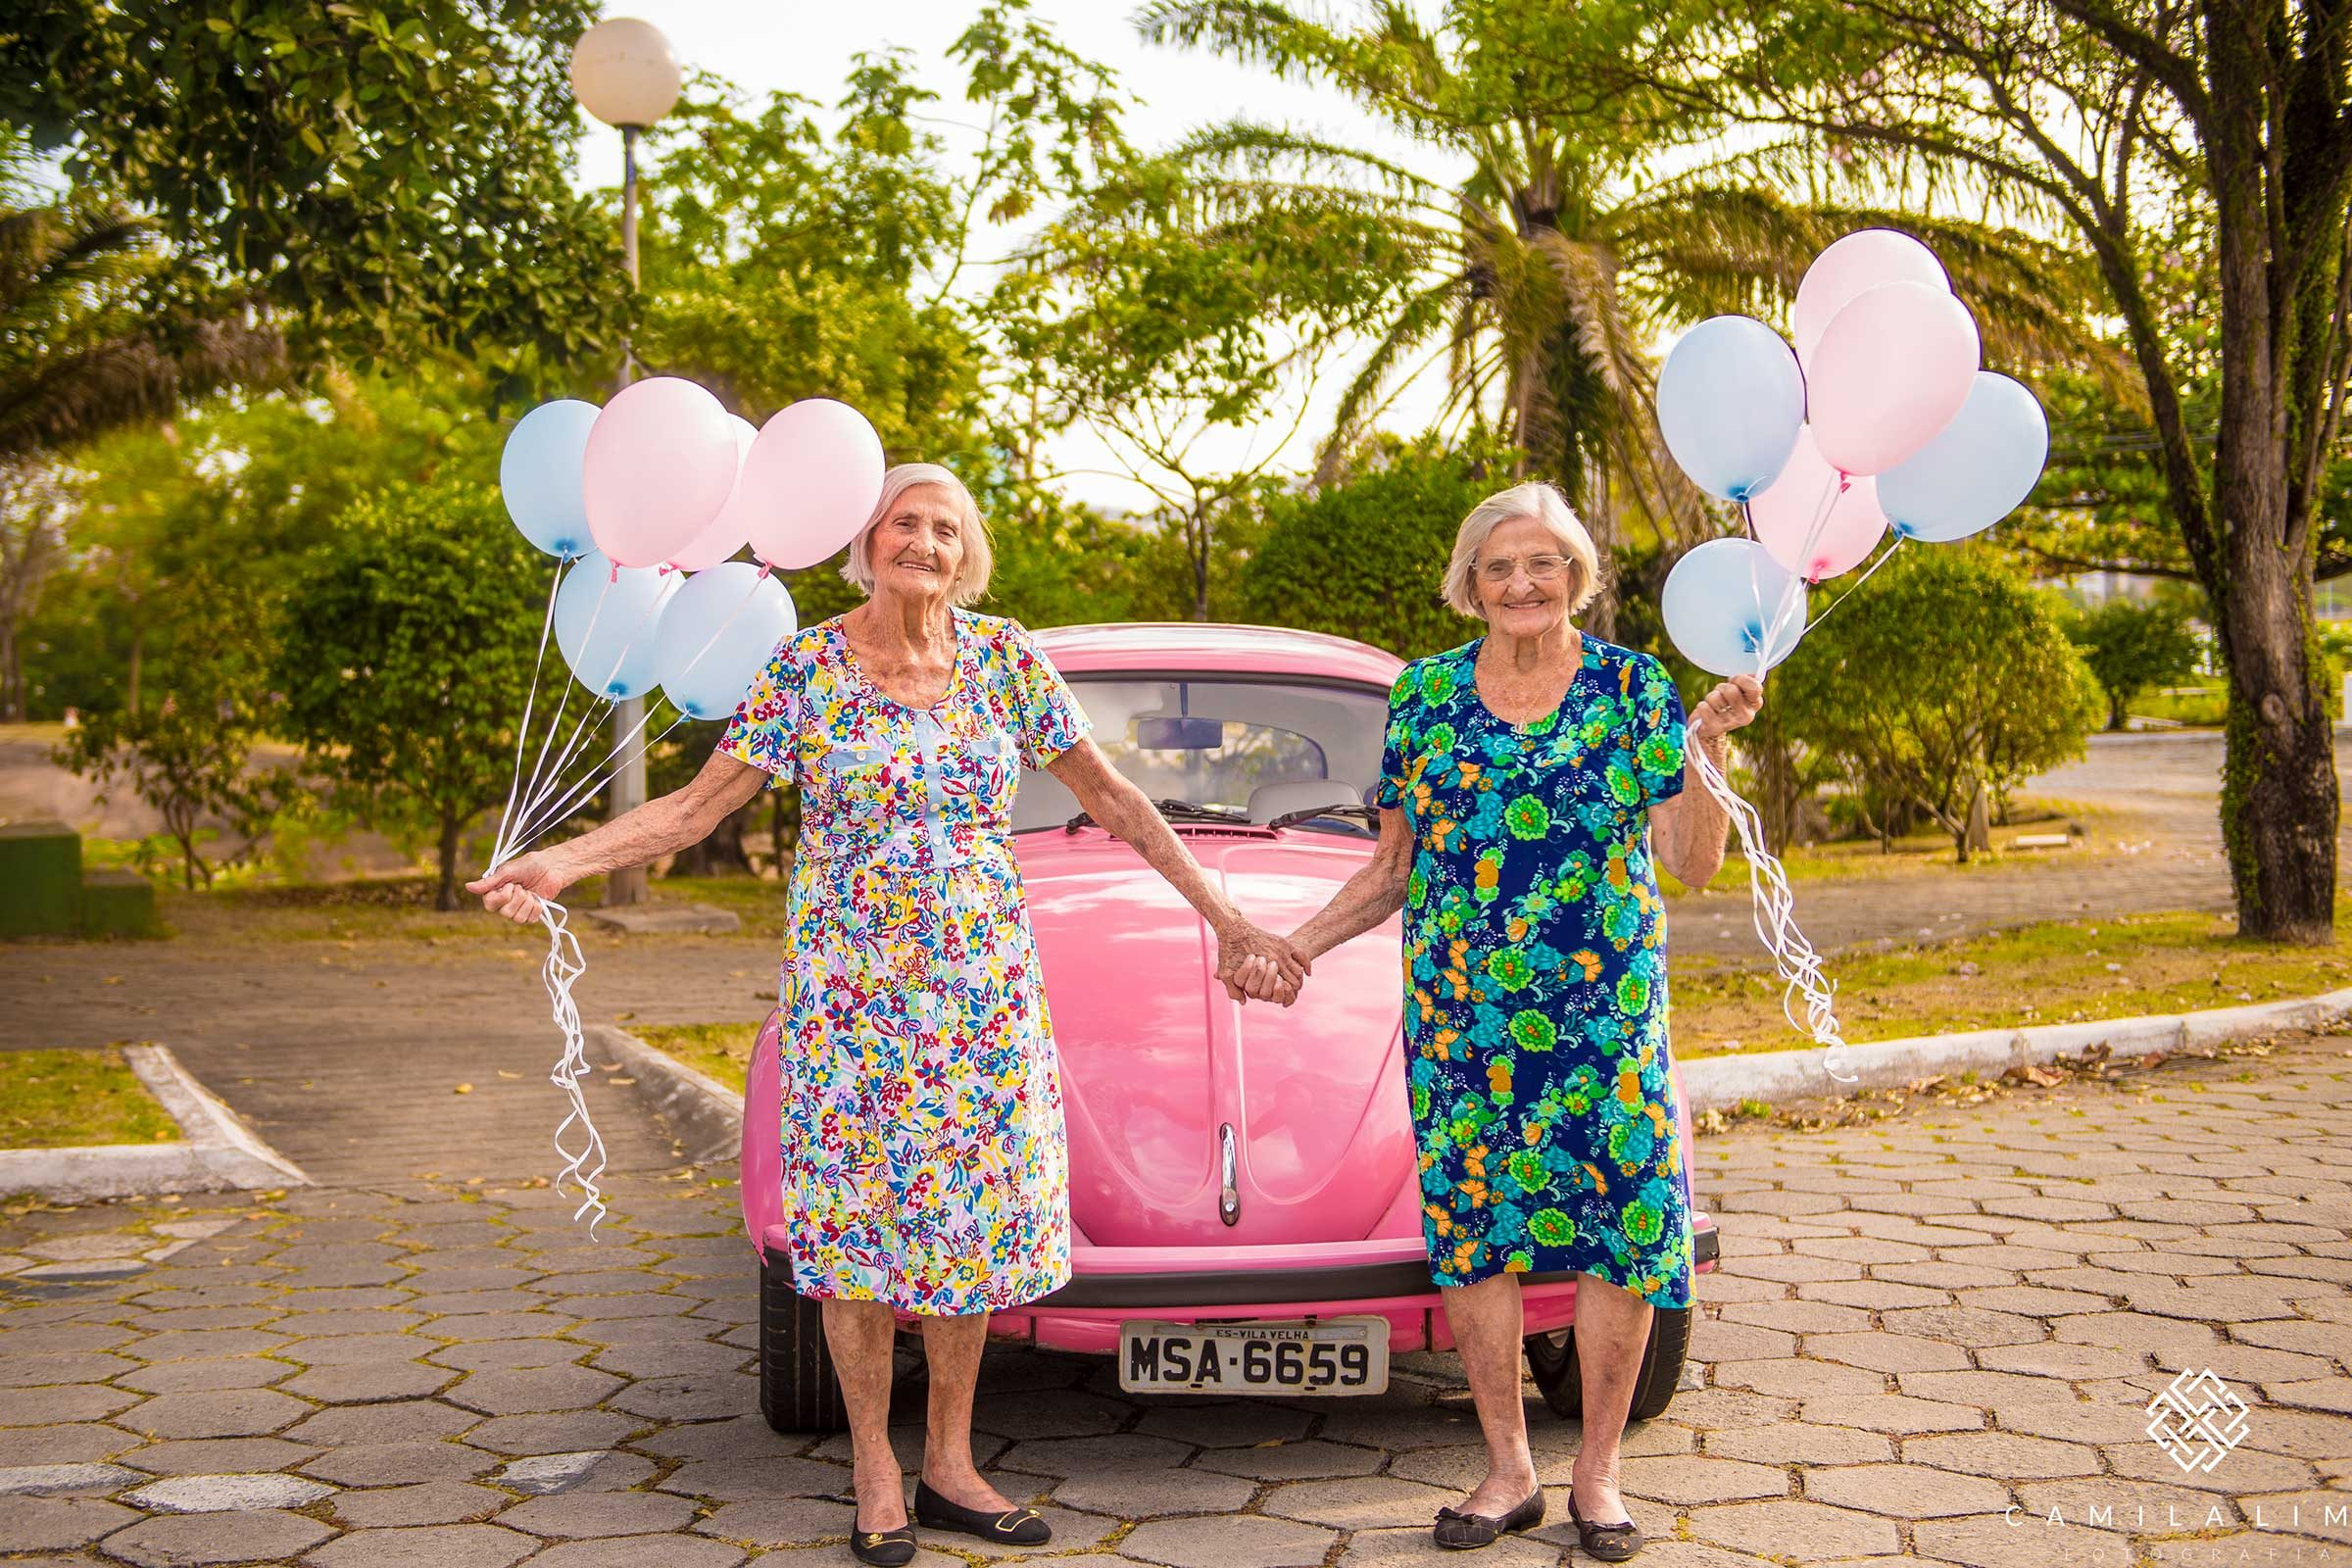 Adorable Photos From 100-Year-Old Twins' Birthday